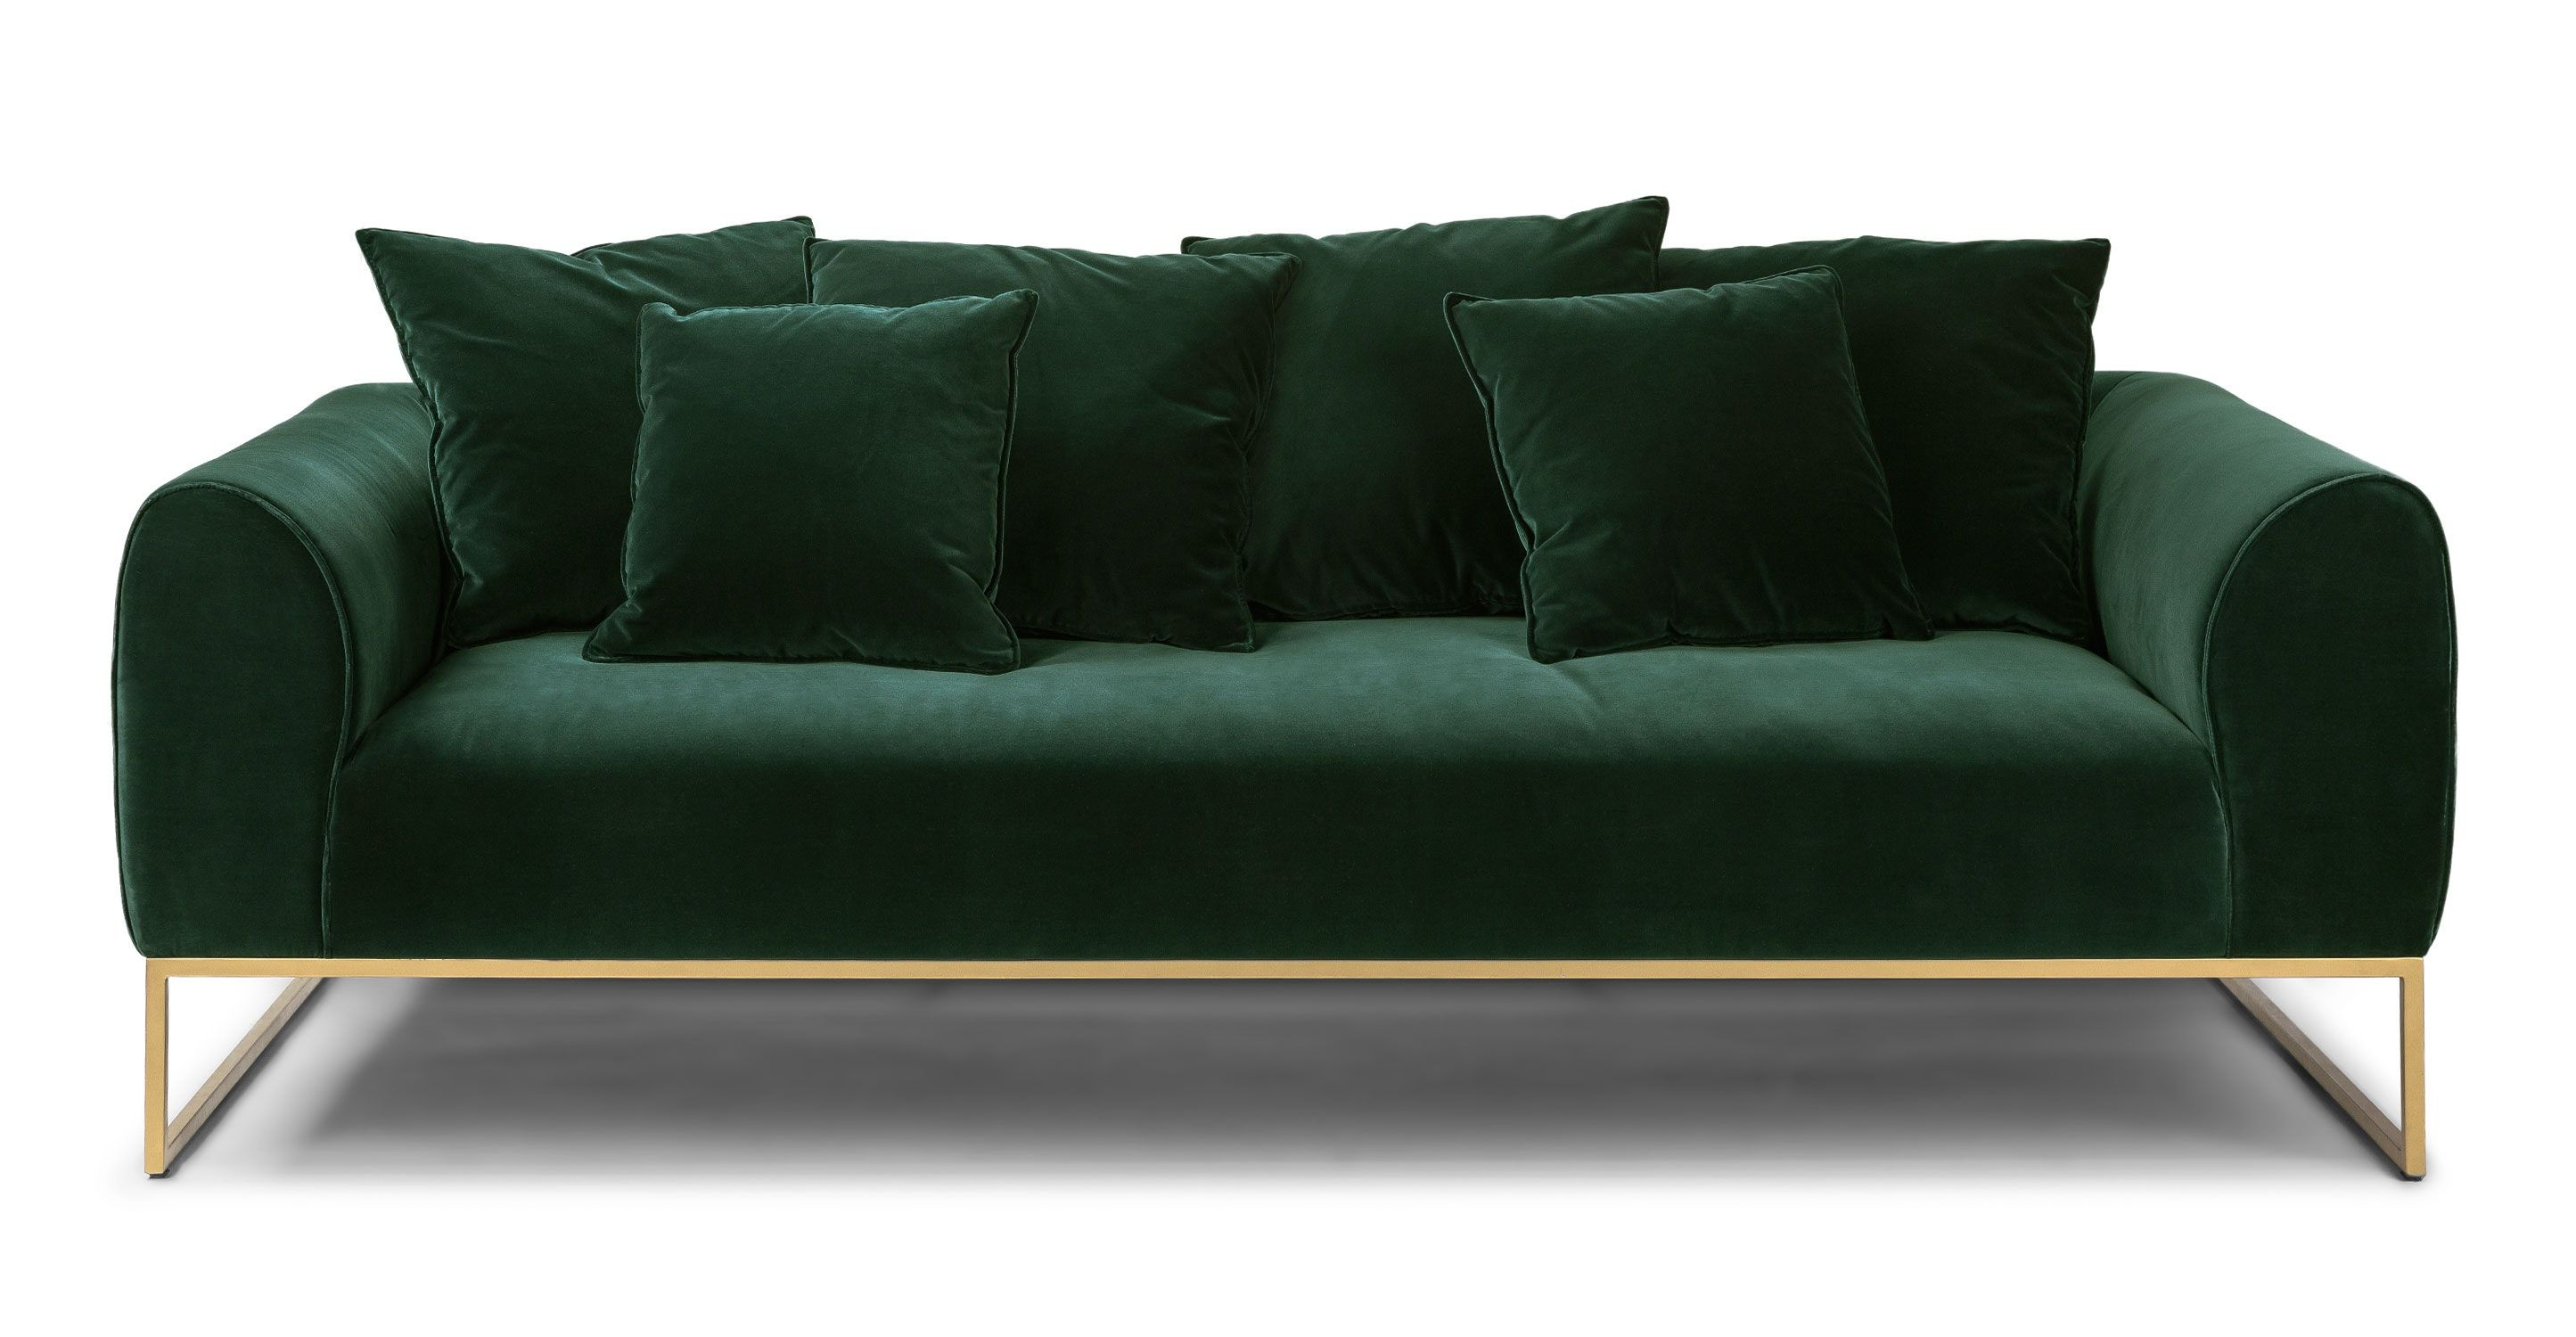 Kits balsam green sofa sofas article modern mid century and scandinavian furniture